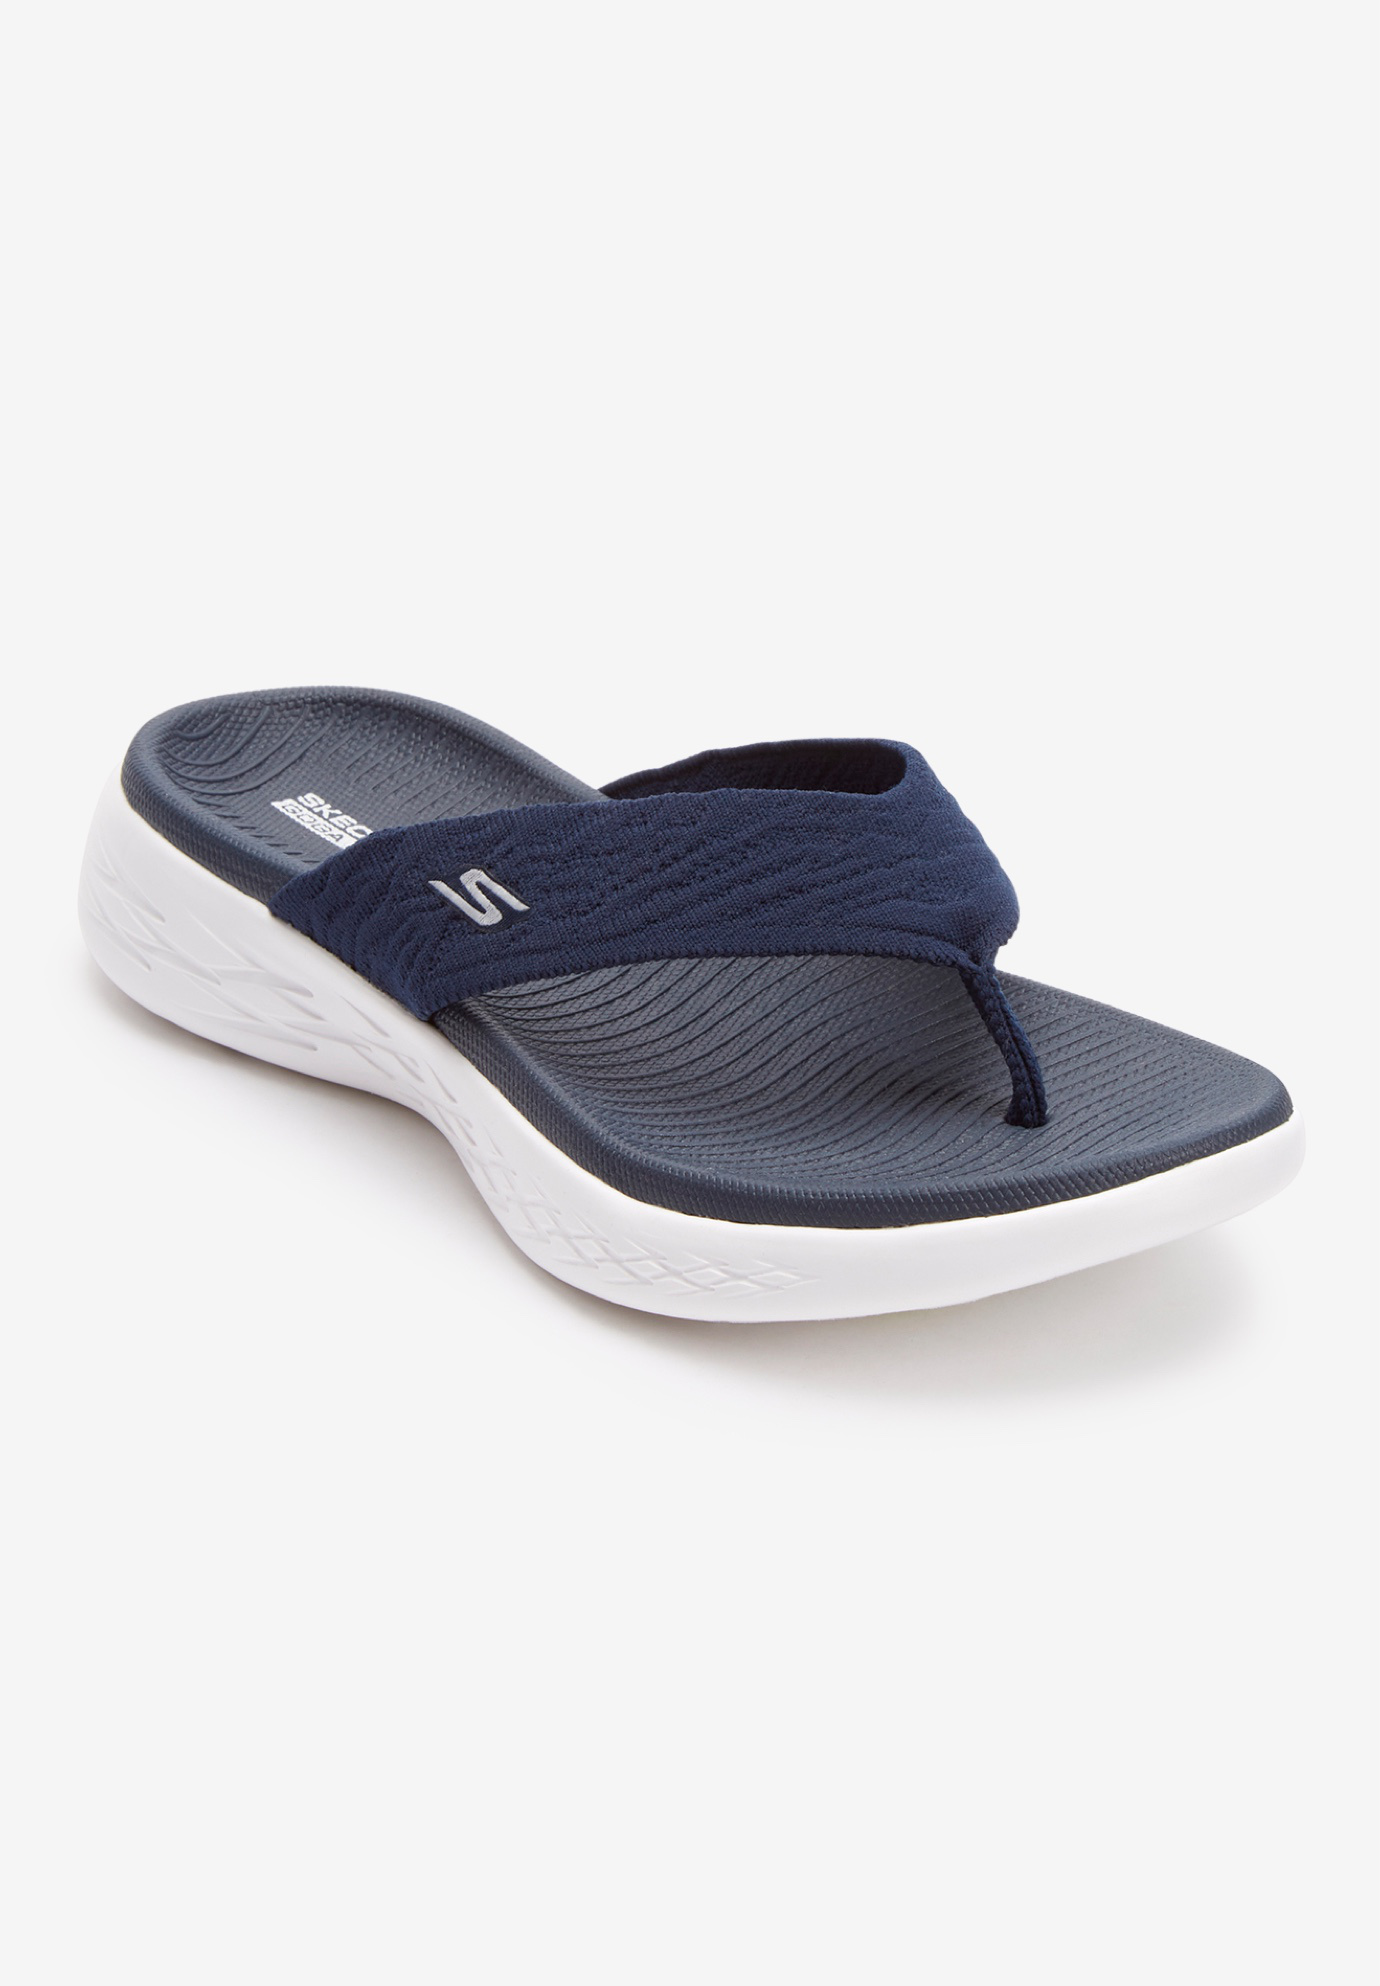 Skechers On The Go Sunny Sandal Catherines